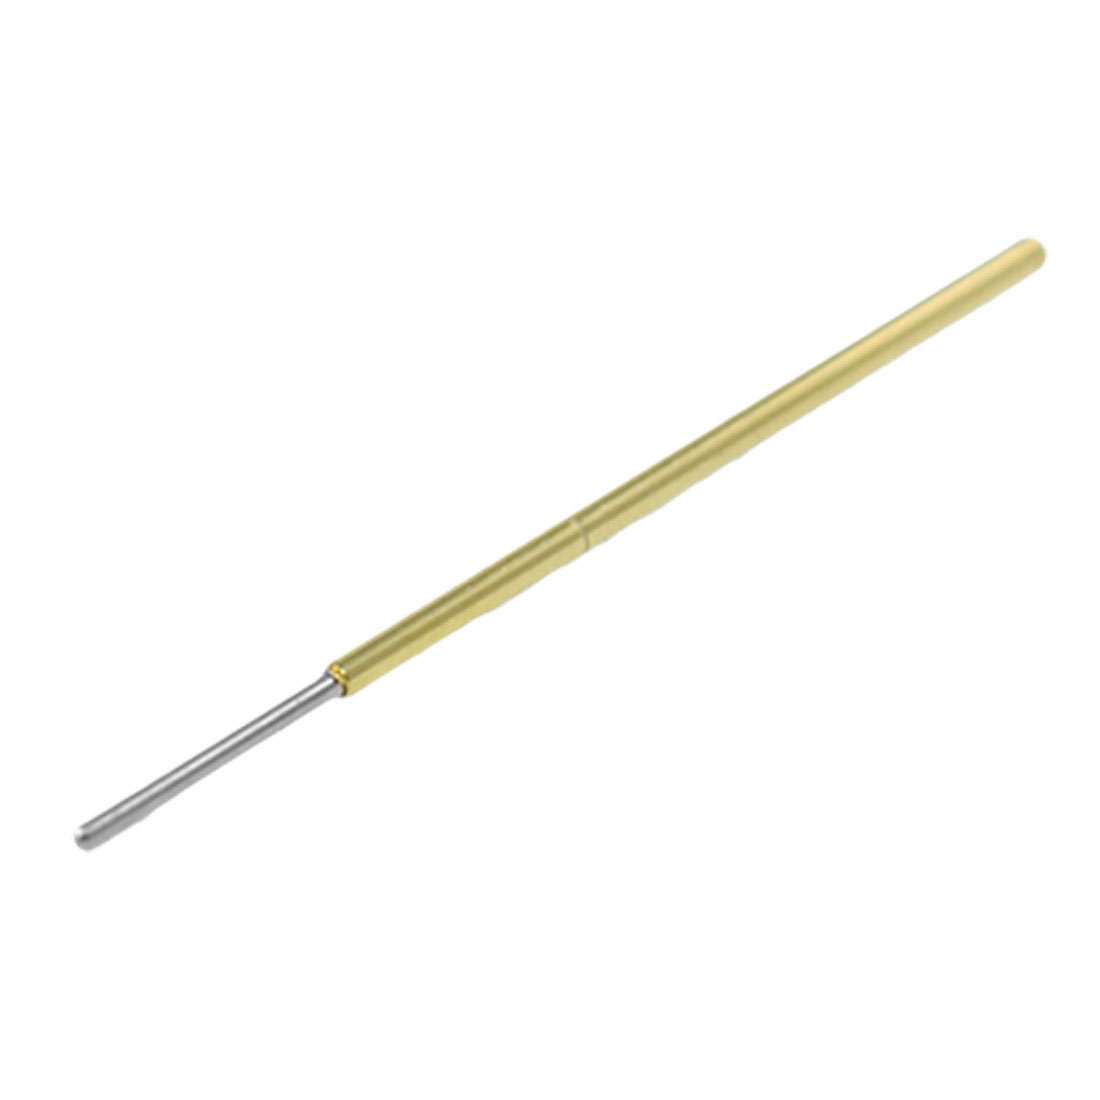 100 Pcs 0.6mm Tip Diameter Spring Testing Test Probes Pins P111-J